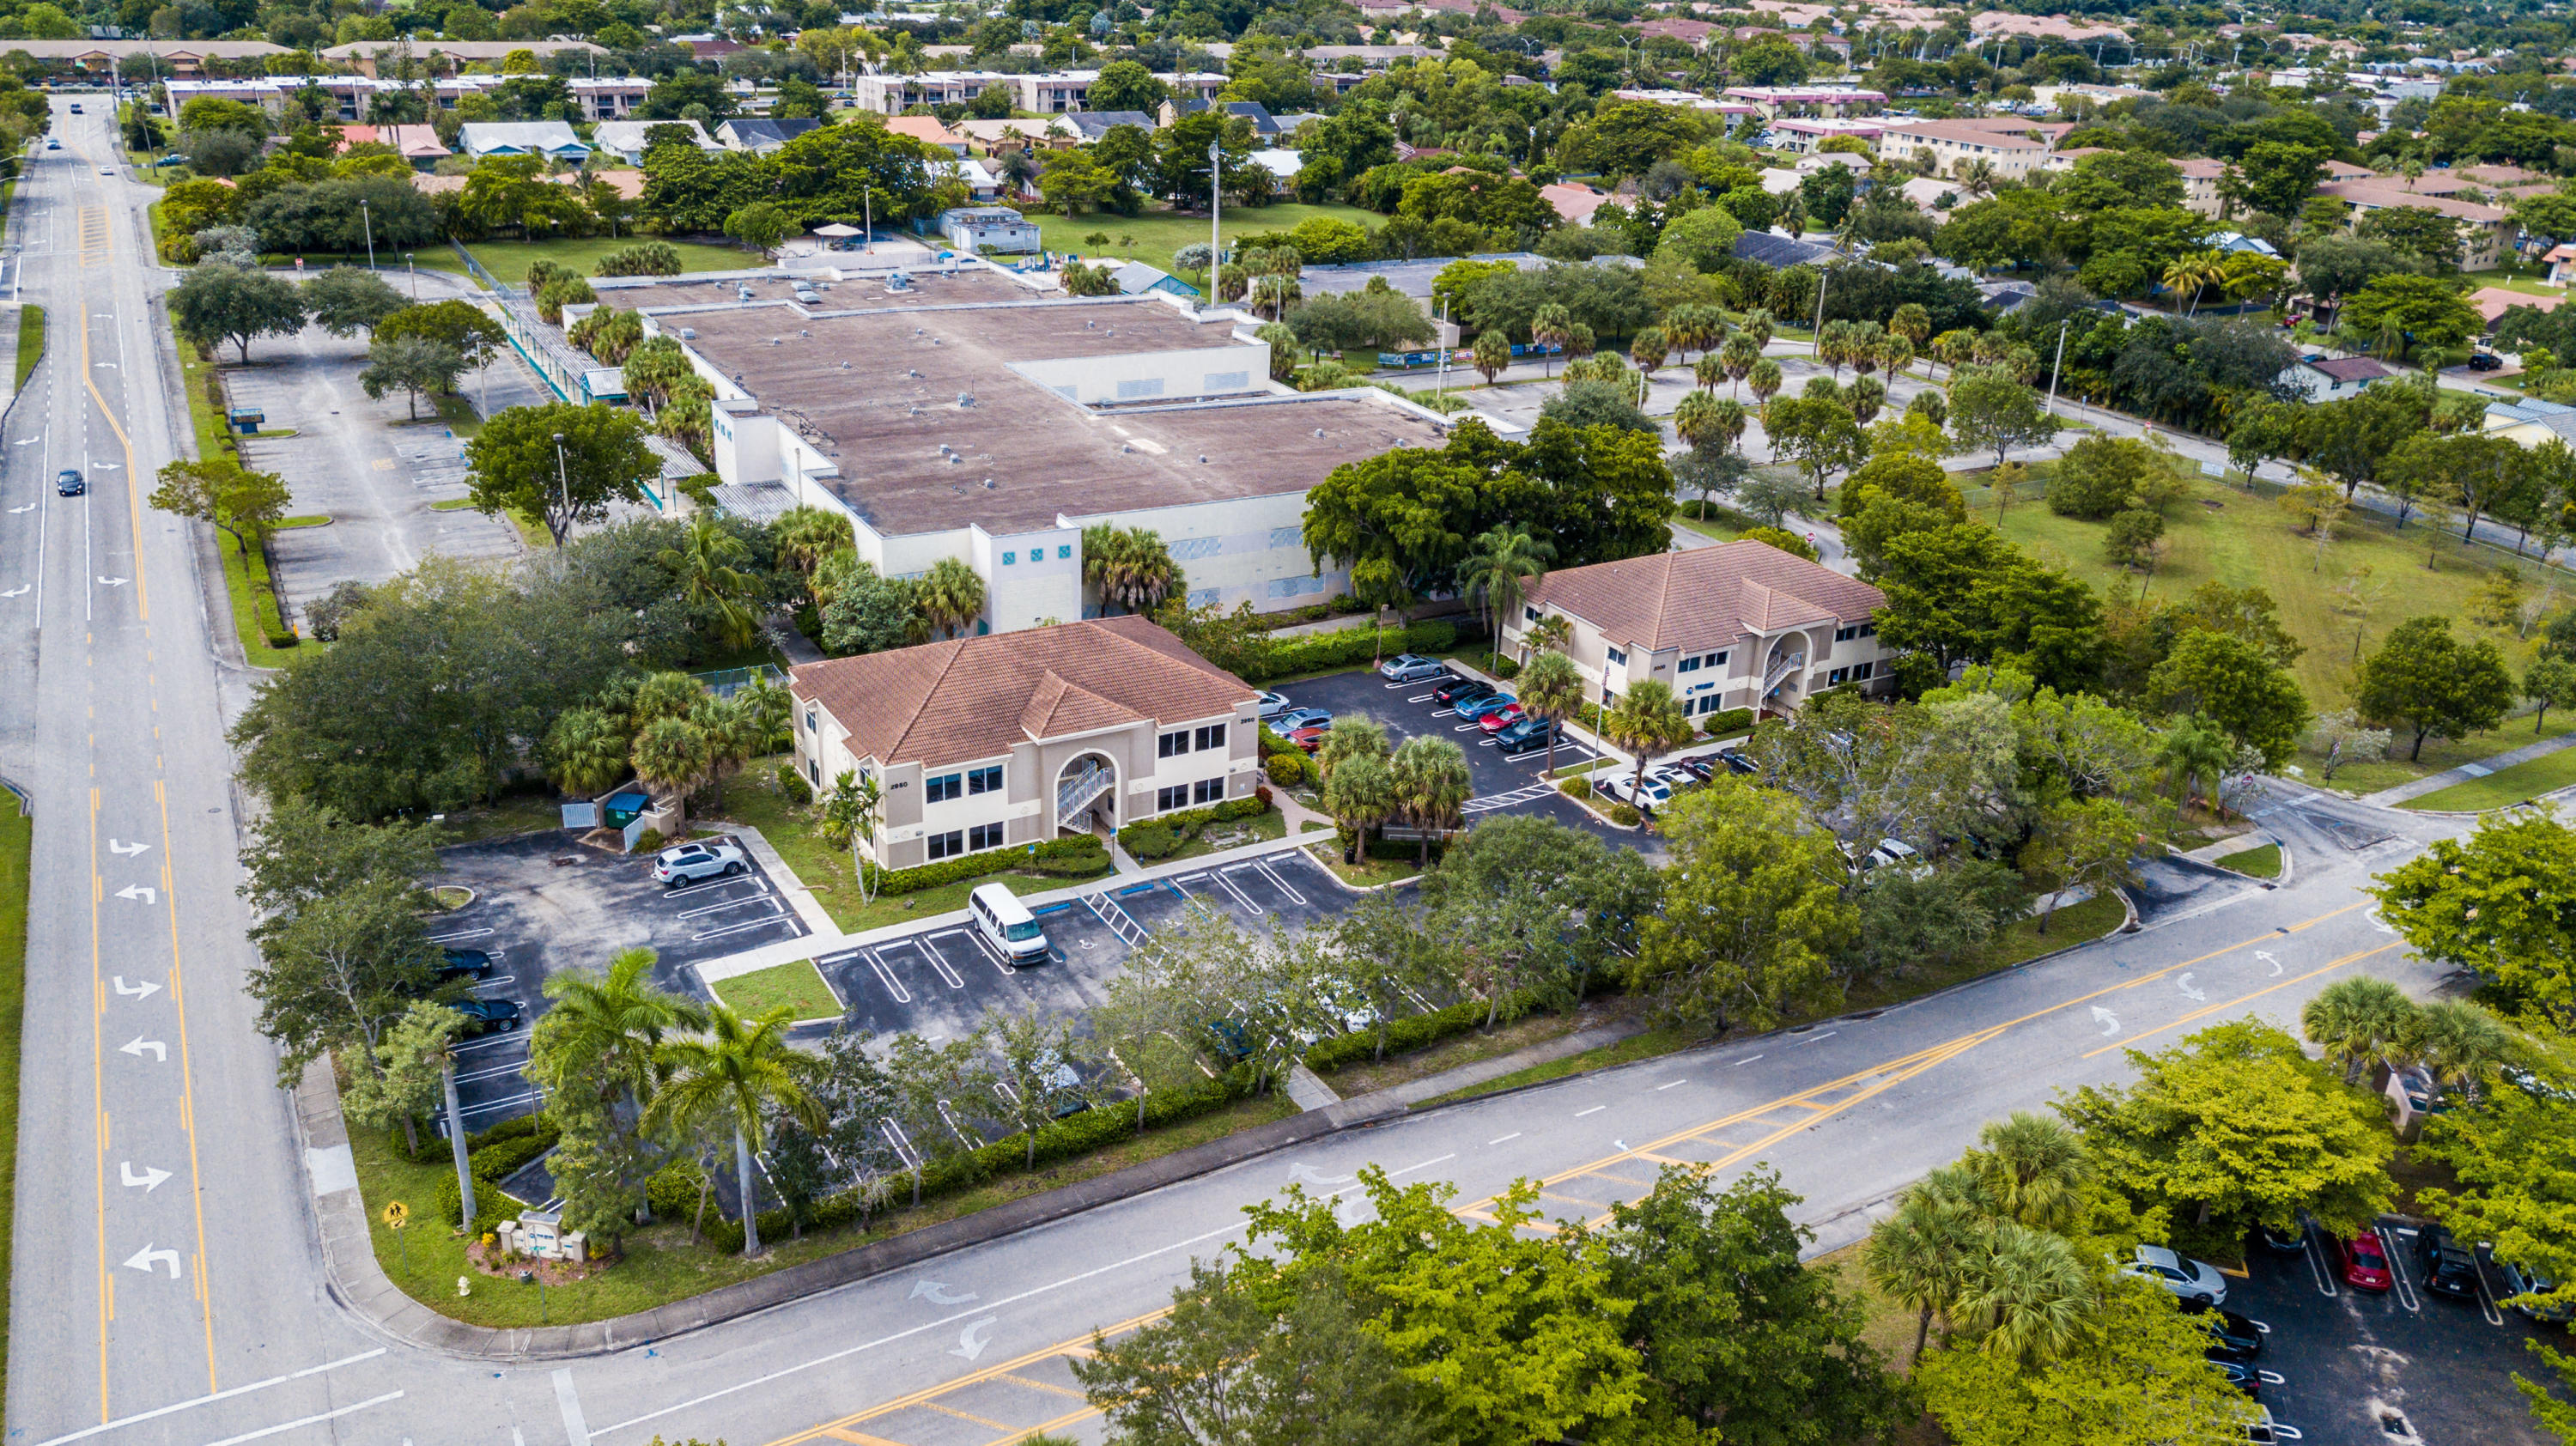 2950 and 3000 NW 101st Ln, adjacent  properties for sale, parcel #'s 48-41-21-06-0760 and  48-41-21-06-0740.Property currently has master lease to a Treatment Center. Zoning allows and current use is Outpatient Detox, PHP, IOP,and OP.Tenant would like to continue lease long term. Must schedule showings in advance. See Lease Terms in Documents section of this listing.Financials available call or text listing agents for more info.